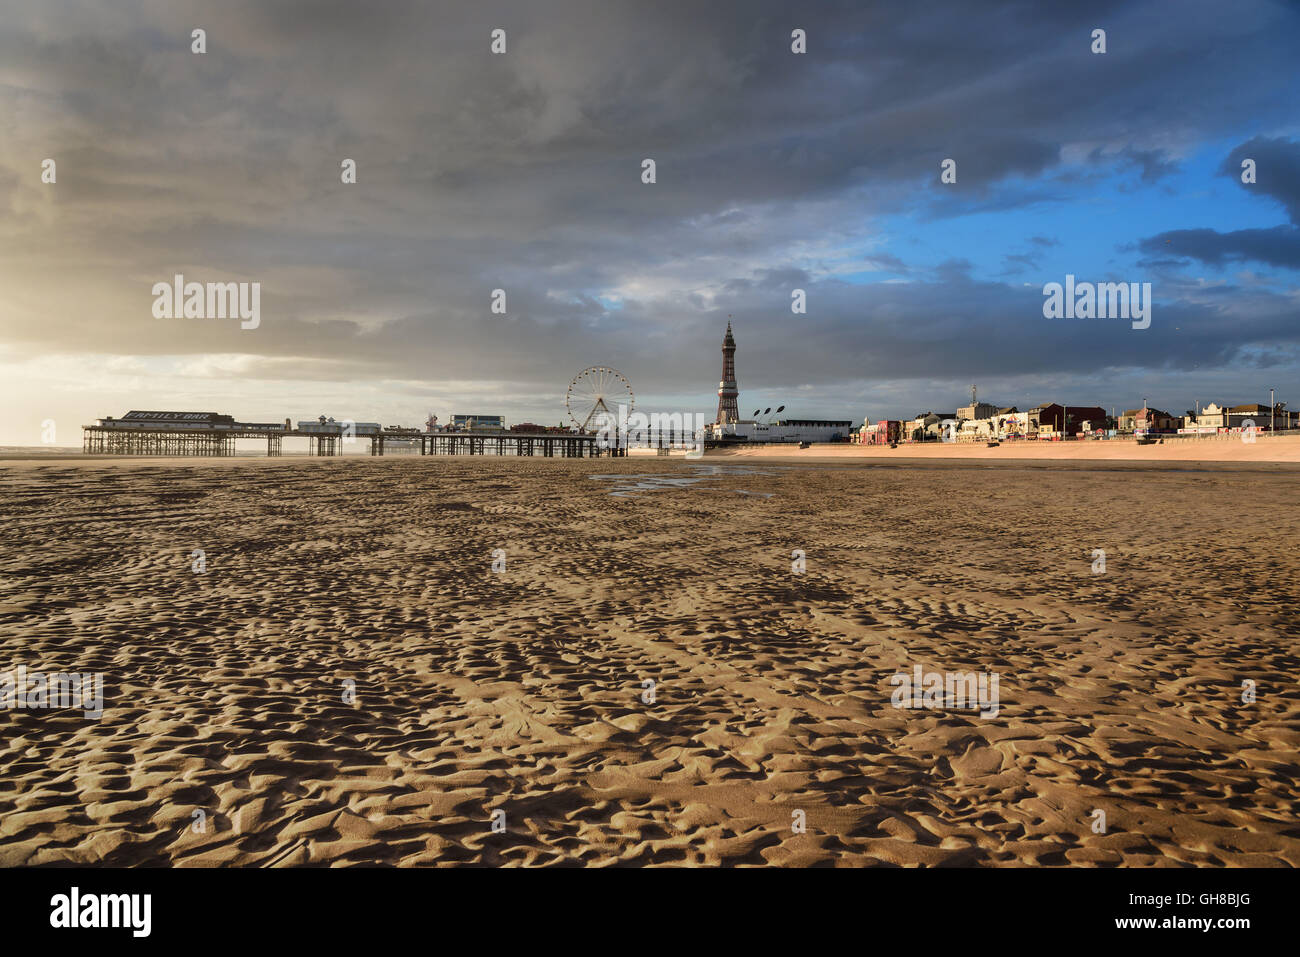 Blackpool Pleasure Beach commonly referred to as Pleasure Beach Resort or simply Pleasure Beach in England. - Stock Image